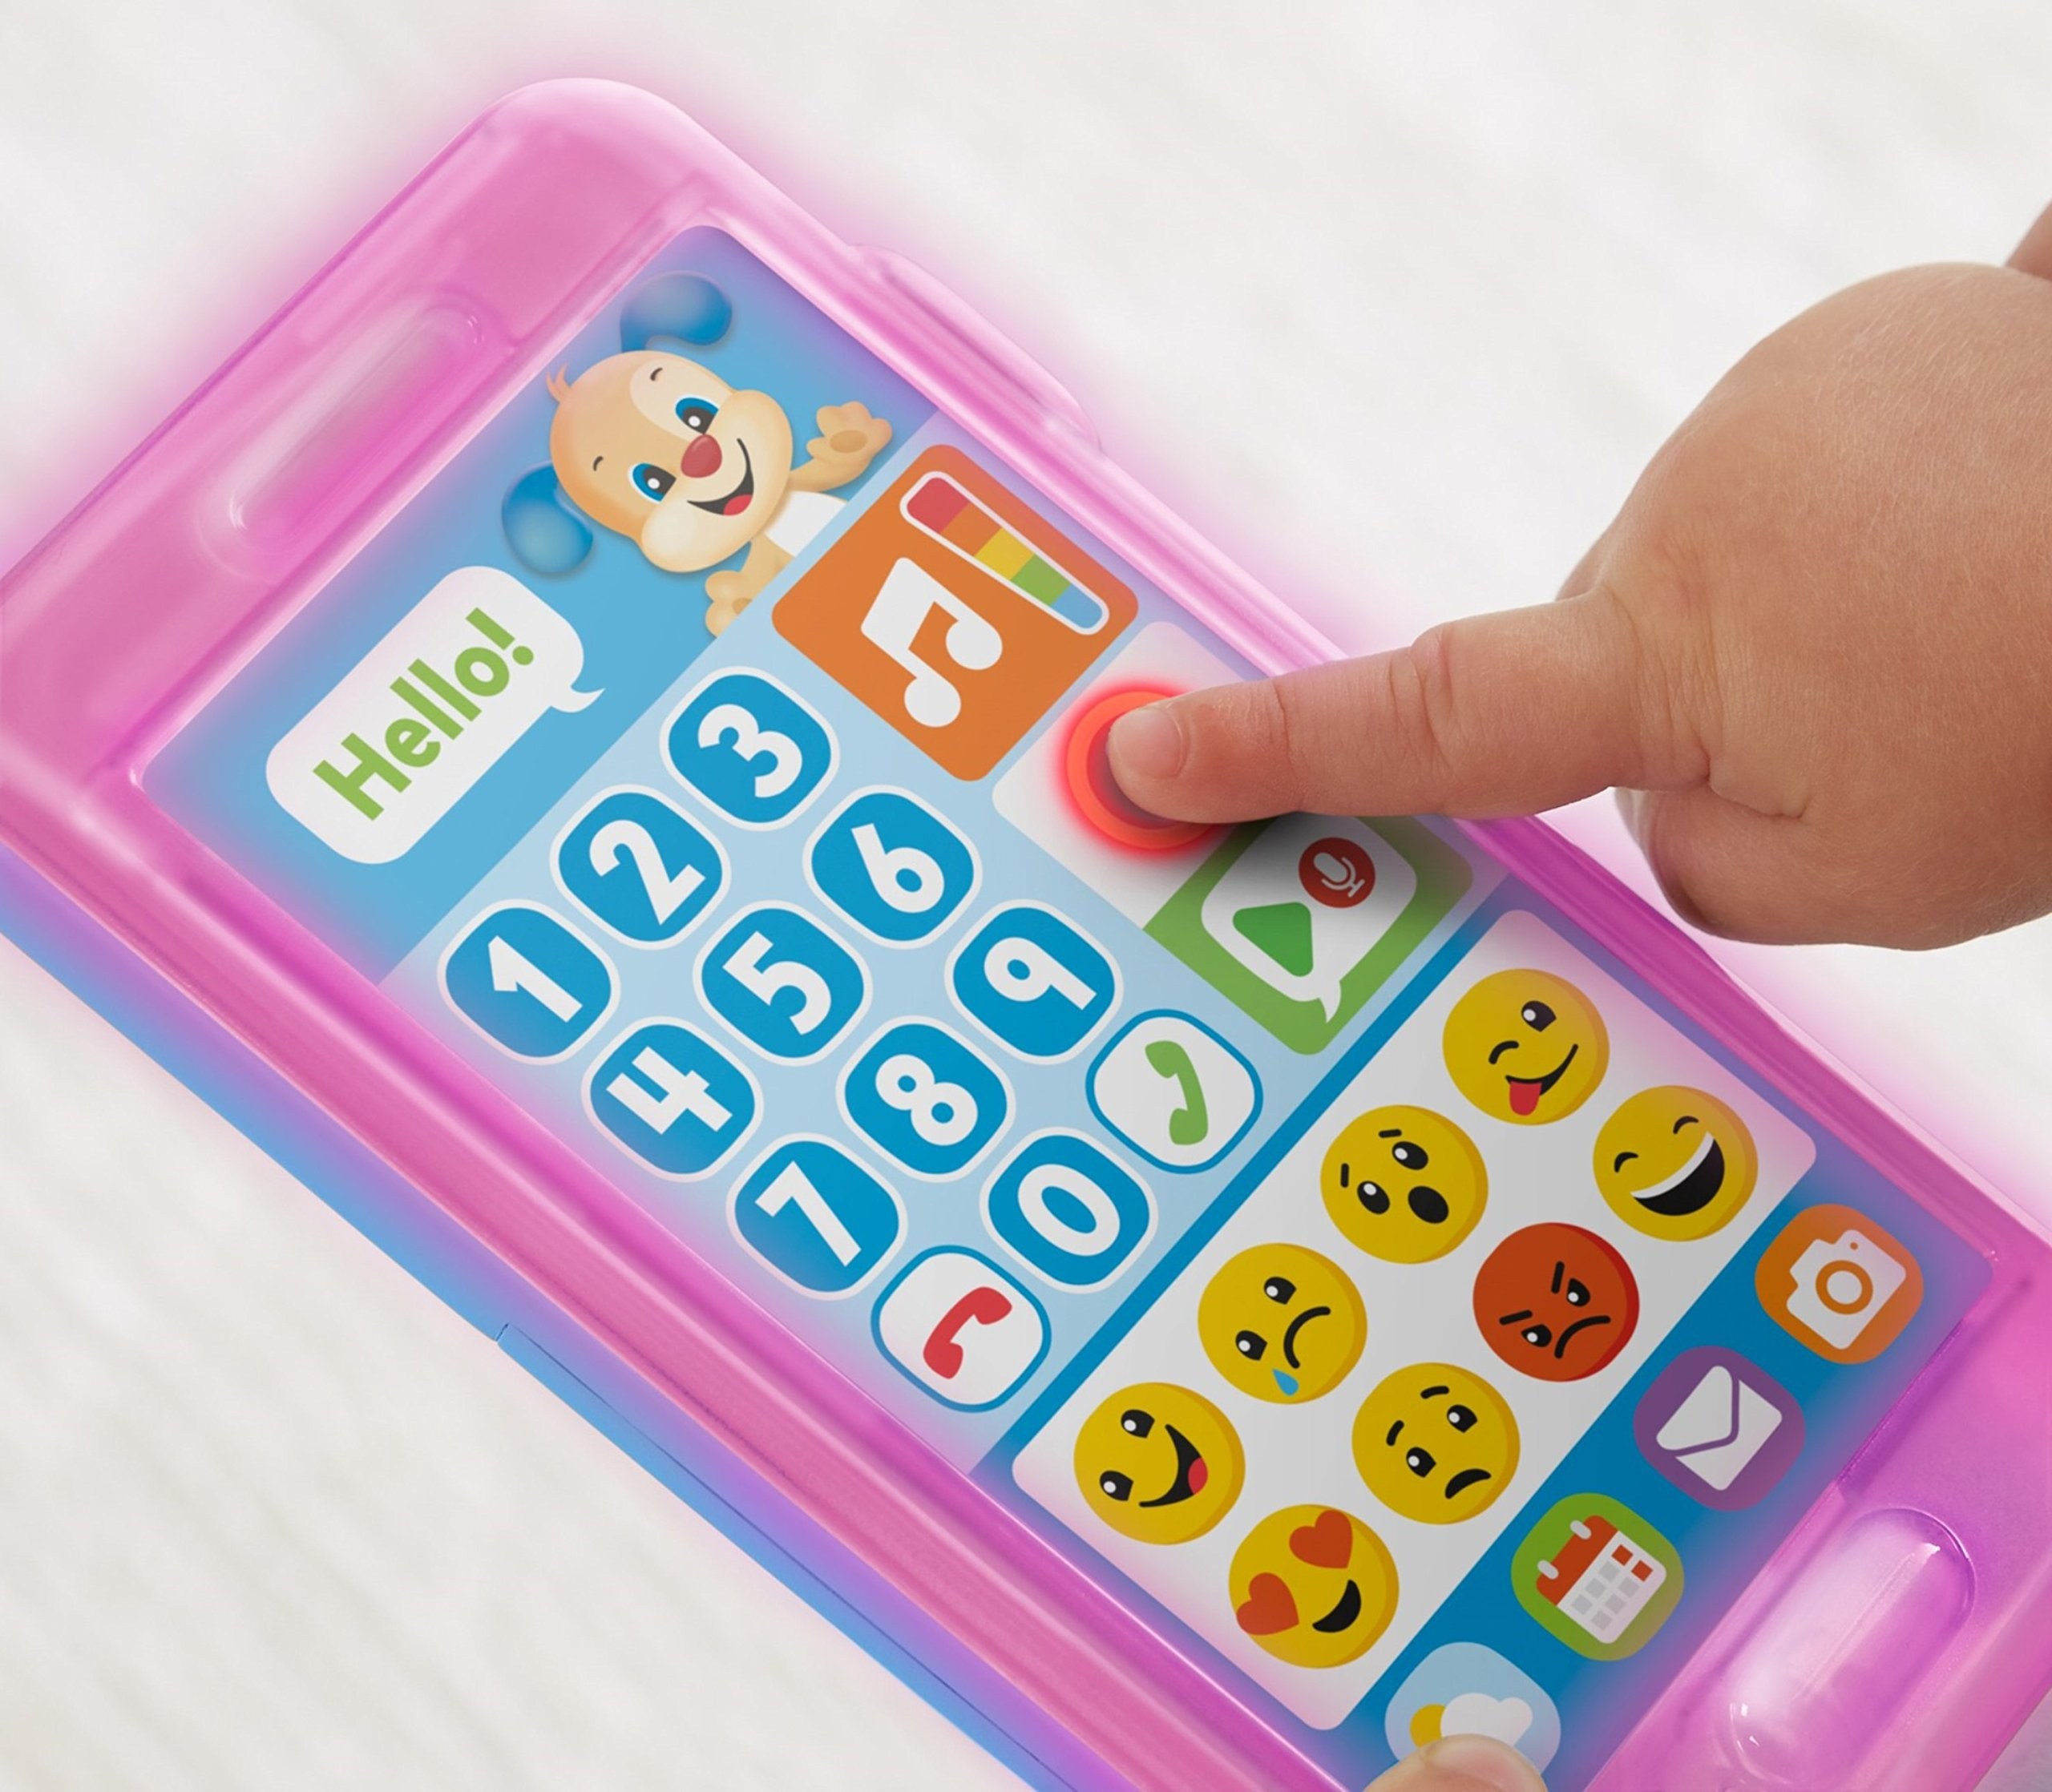 Fisher-Price Laugh & Learn Leave A Message Smart Phone, Puppy by Fisher-Price (Image #4)